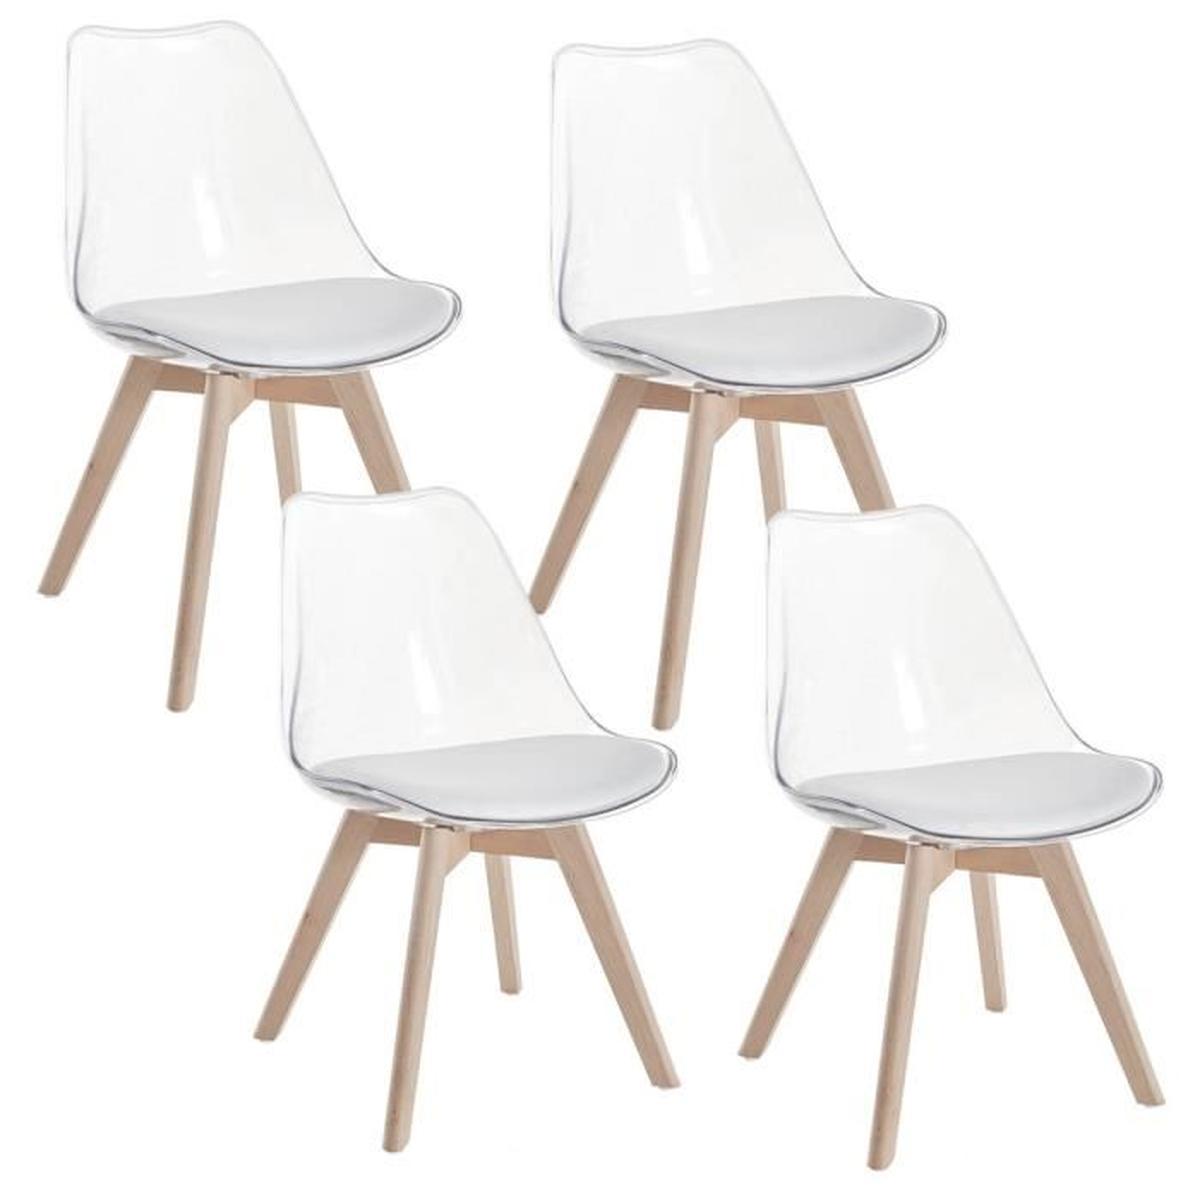 Chaises Transparentes Suisse Chaise Scandinave Tranparente Pearlfection Fr